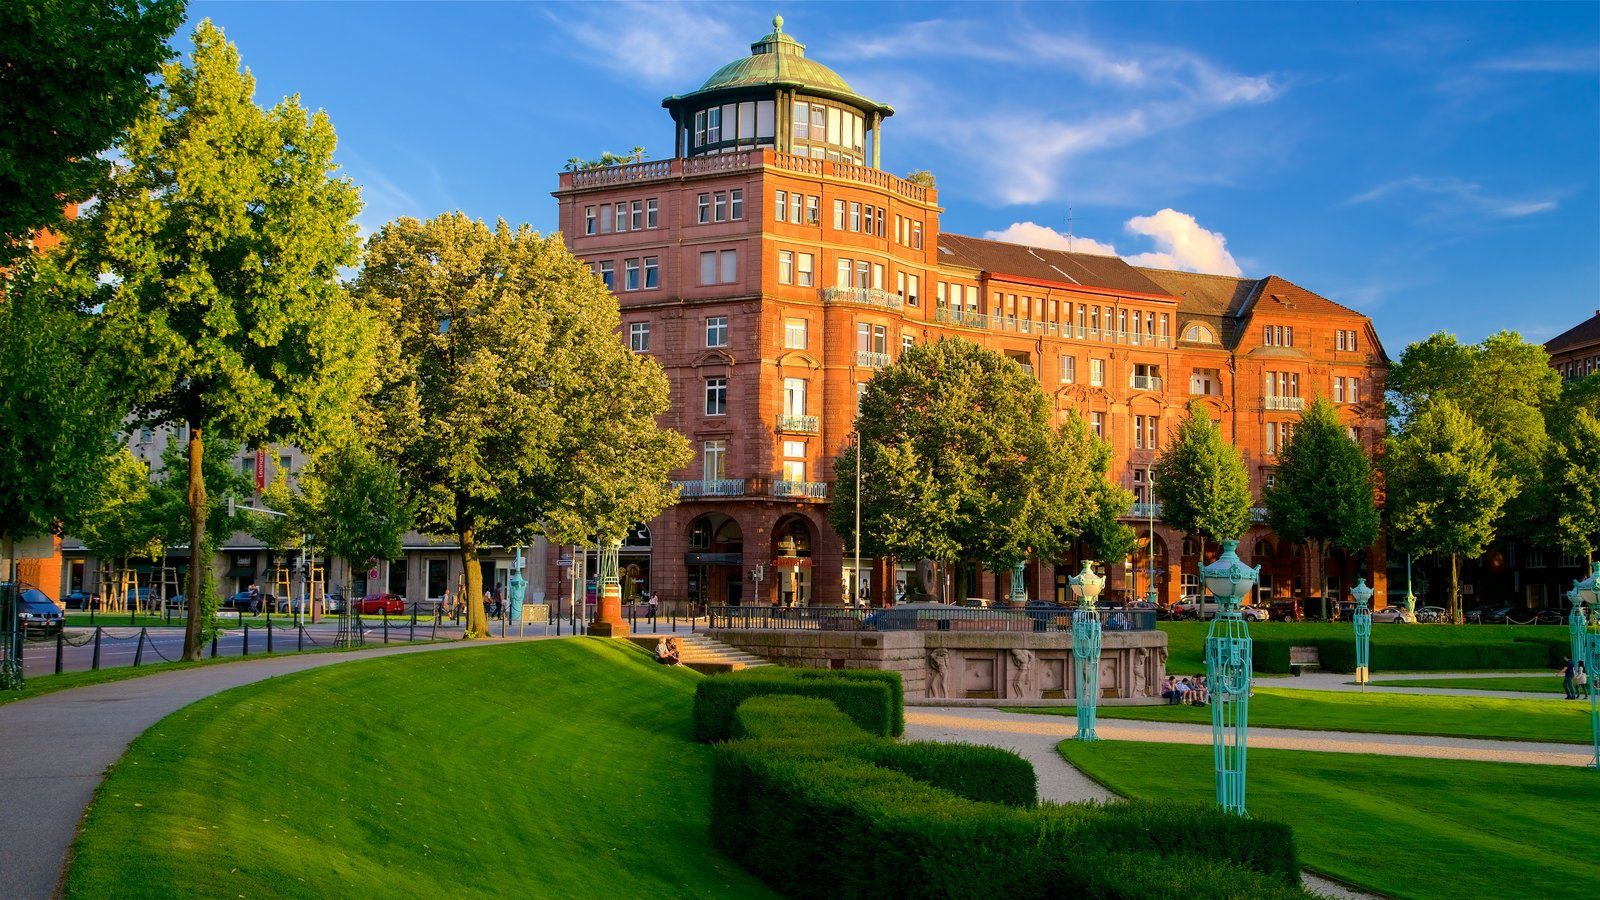 Friedrichsplatz which includes a park, a sunset and heritage elements